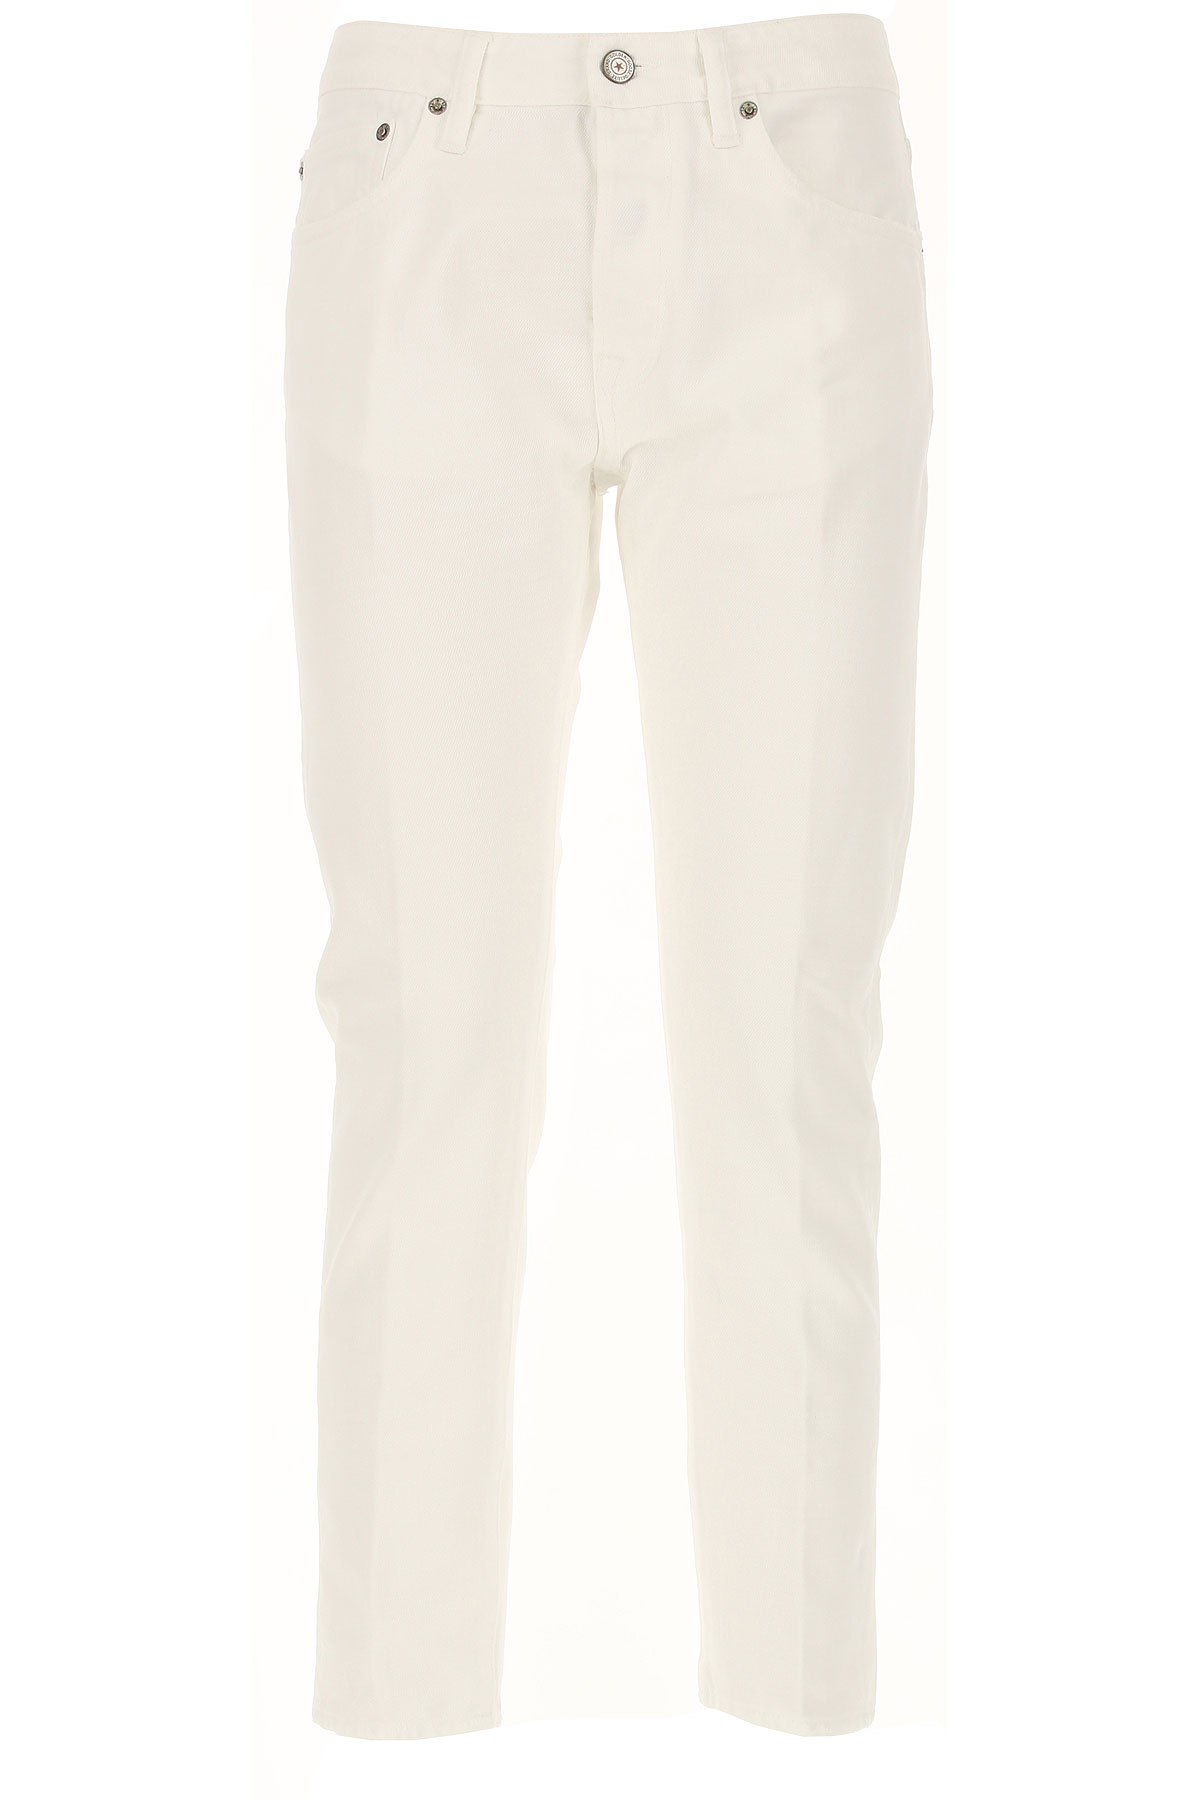 Golden Goose Jeans, White, Cotton, 2017, 25 26 27 28 29 30